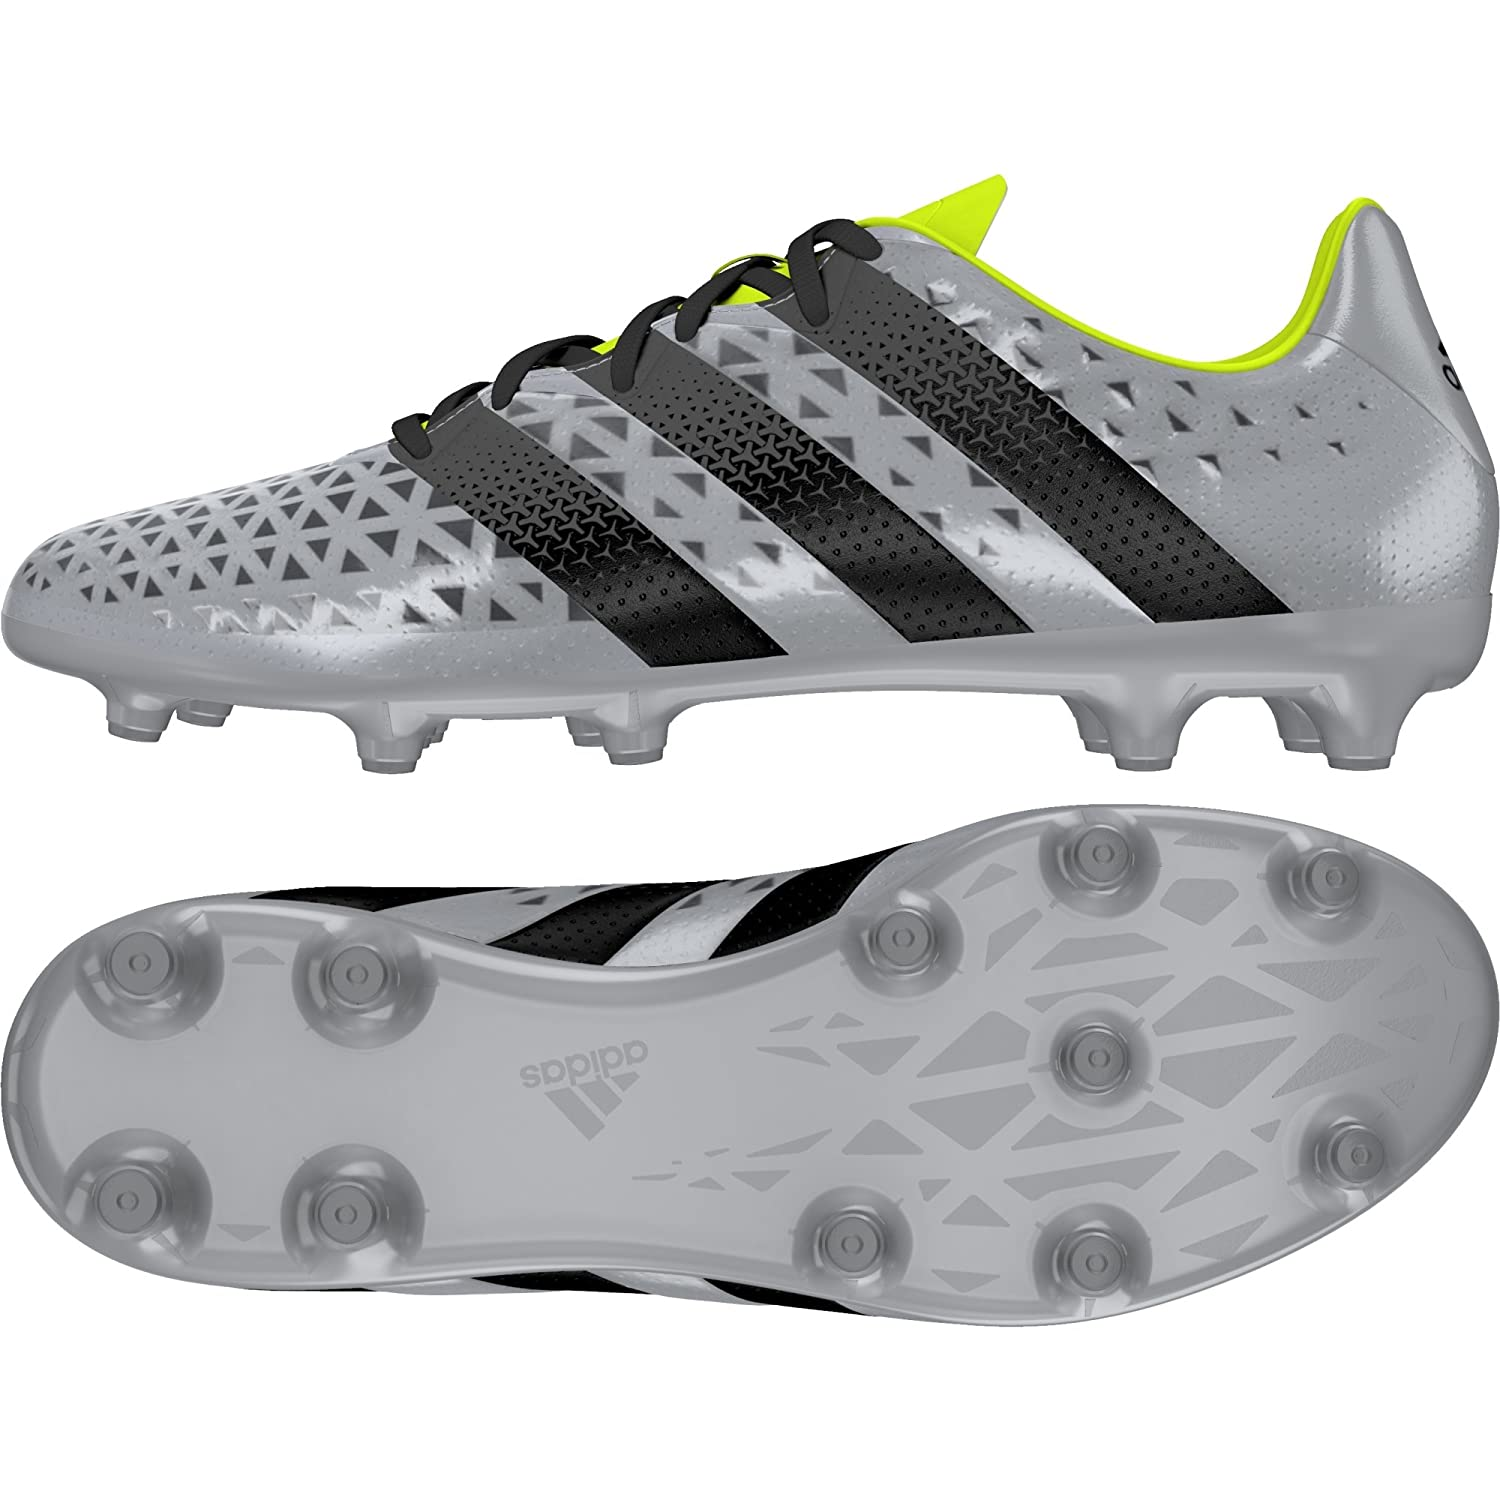 reputable site 182ff d36c7 Amazon.com | adidas Ace 16.3 FG Mens Football Boots Soccer ...